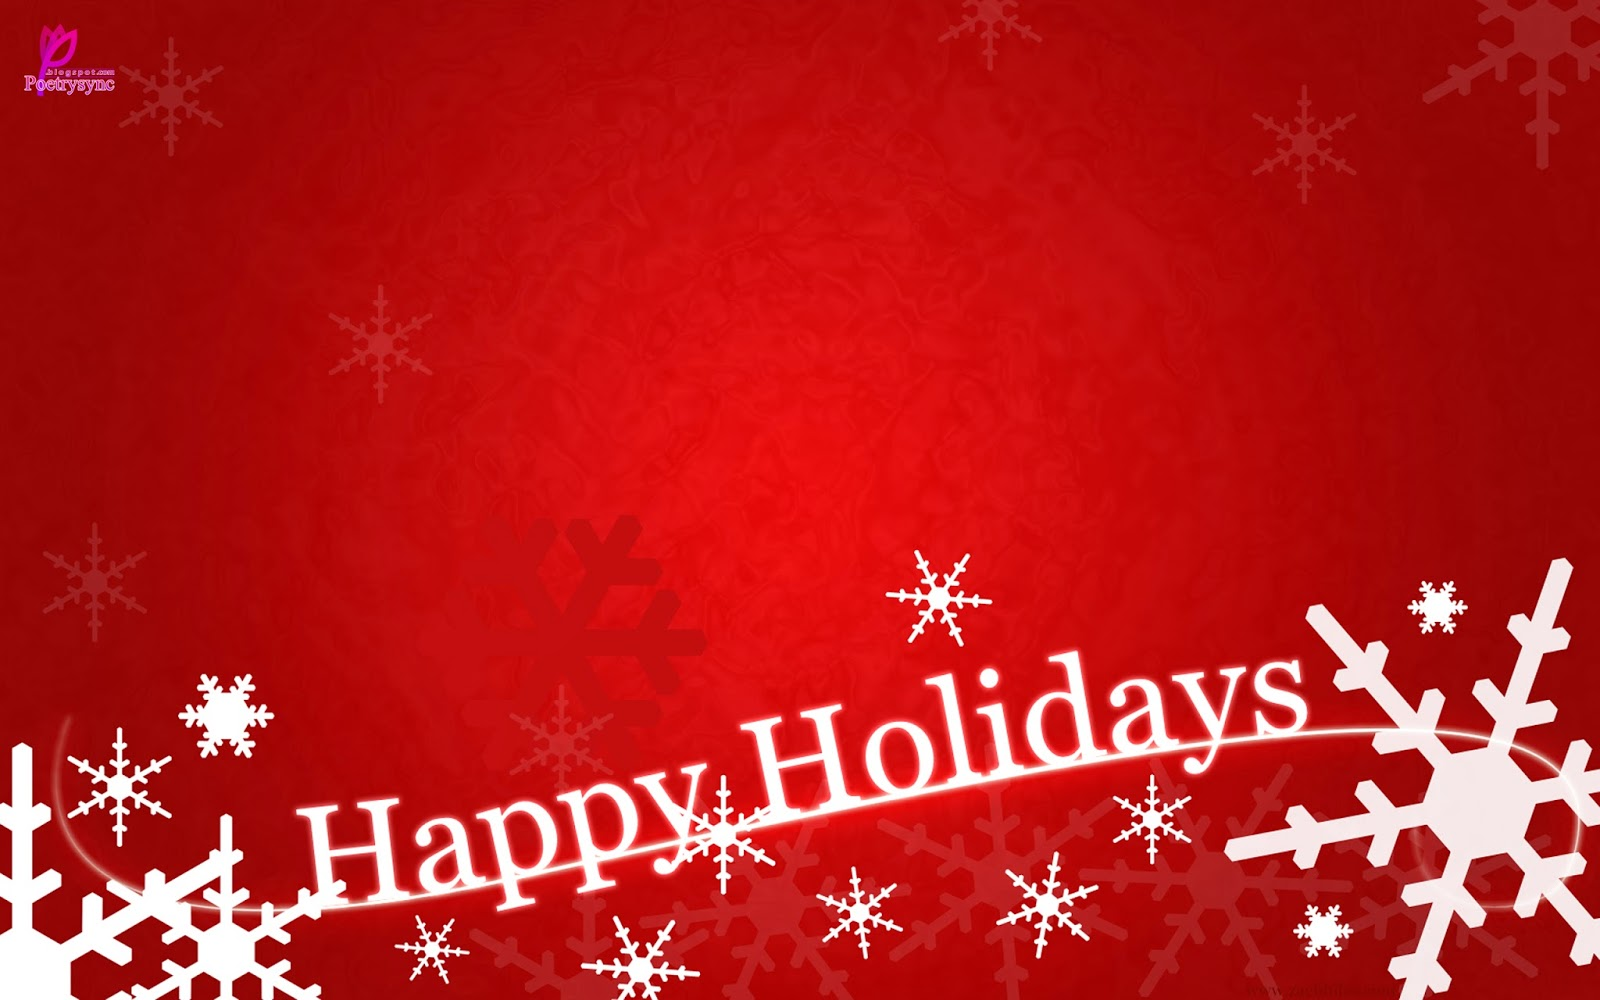 Happy Holidays Red Greeting Card Picture